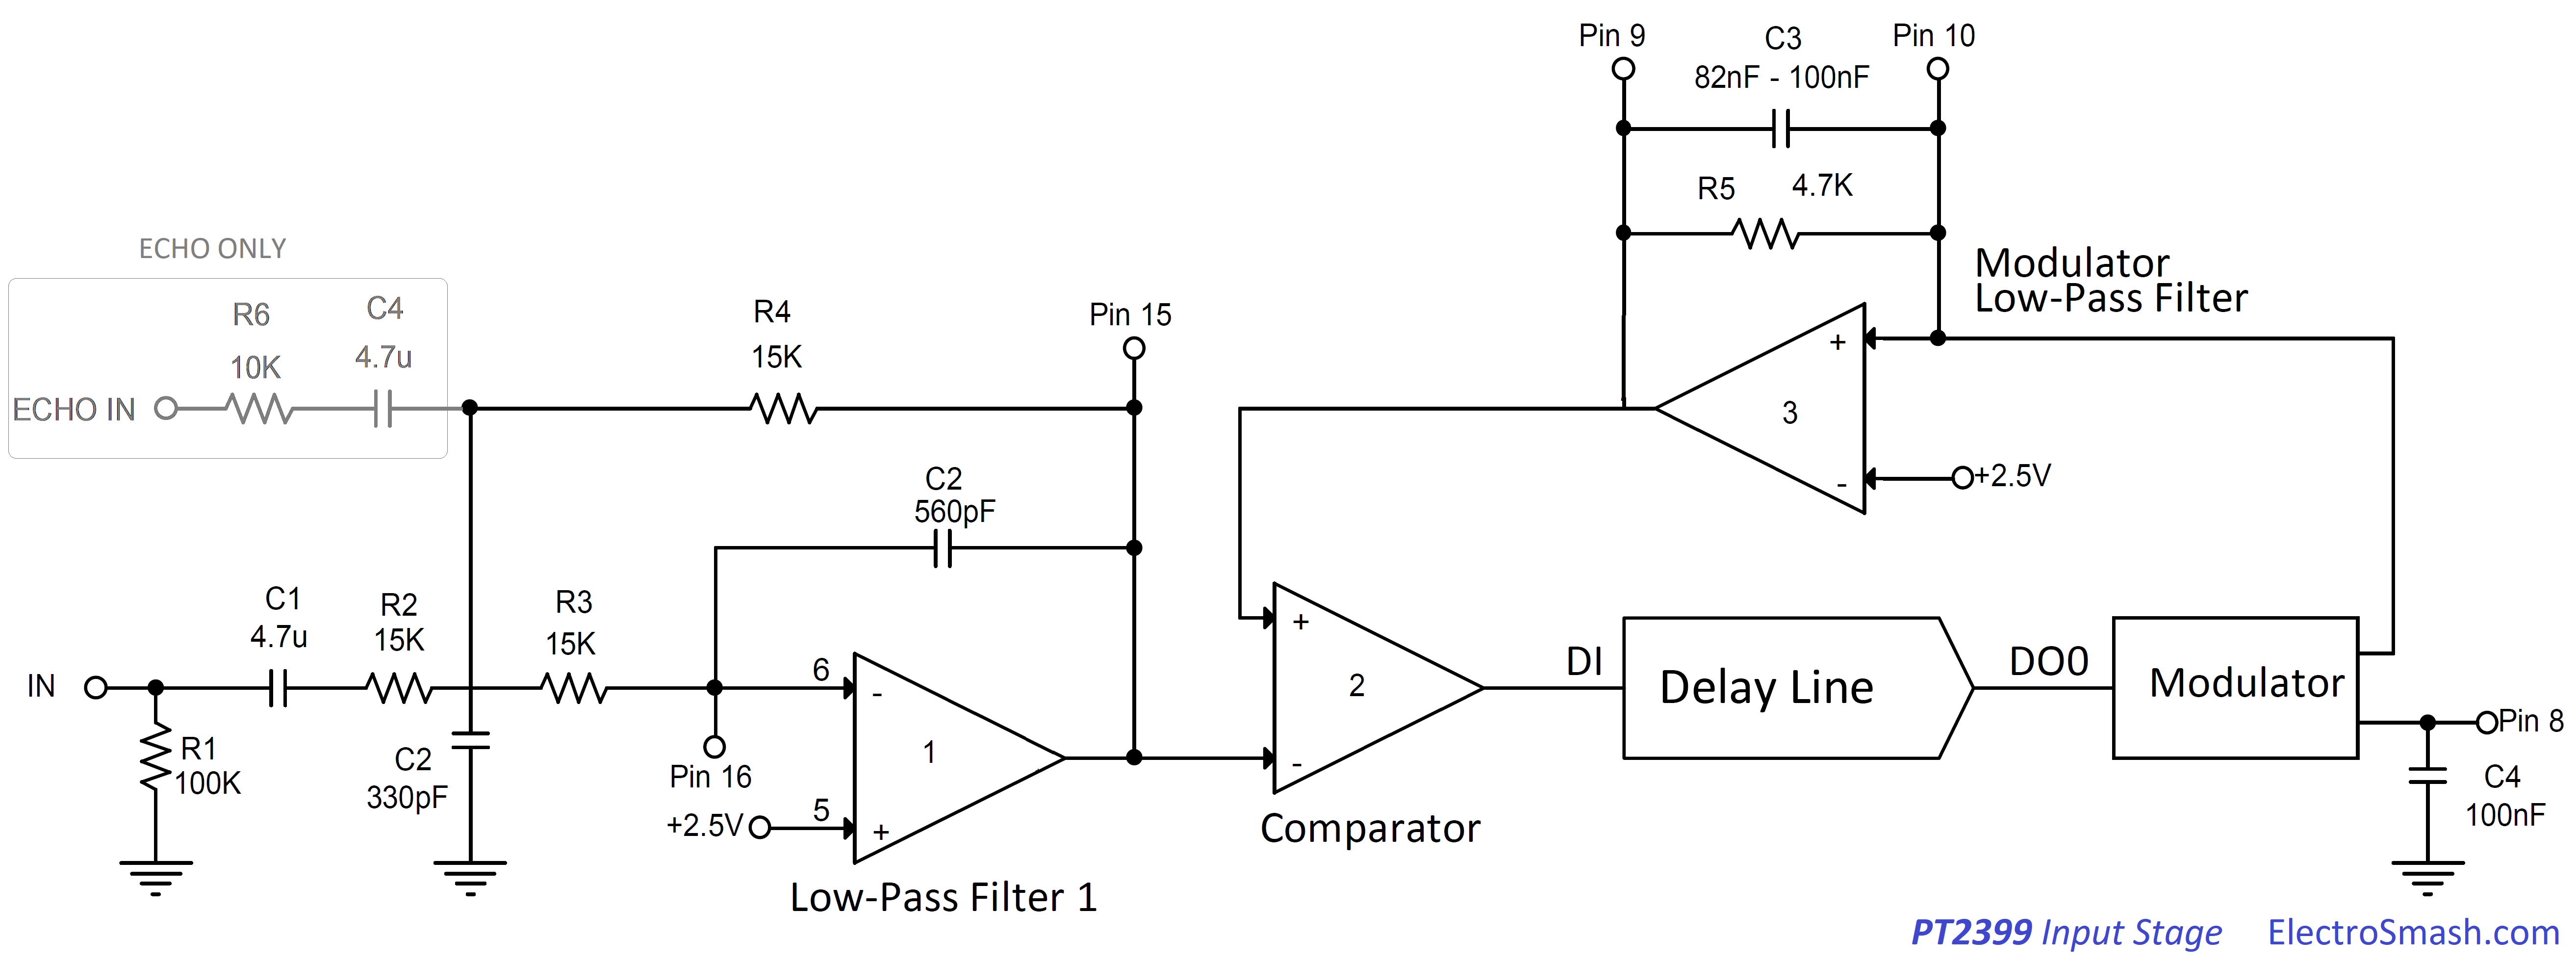 Electrosmash Pt2399 Analysis Op Amp Circuit Used As A Virtual Earth Mixer Summing Amplifier Input Stage Small